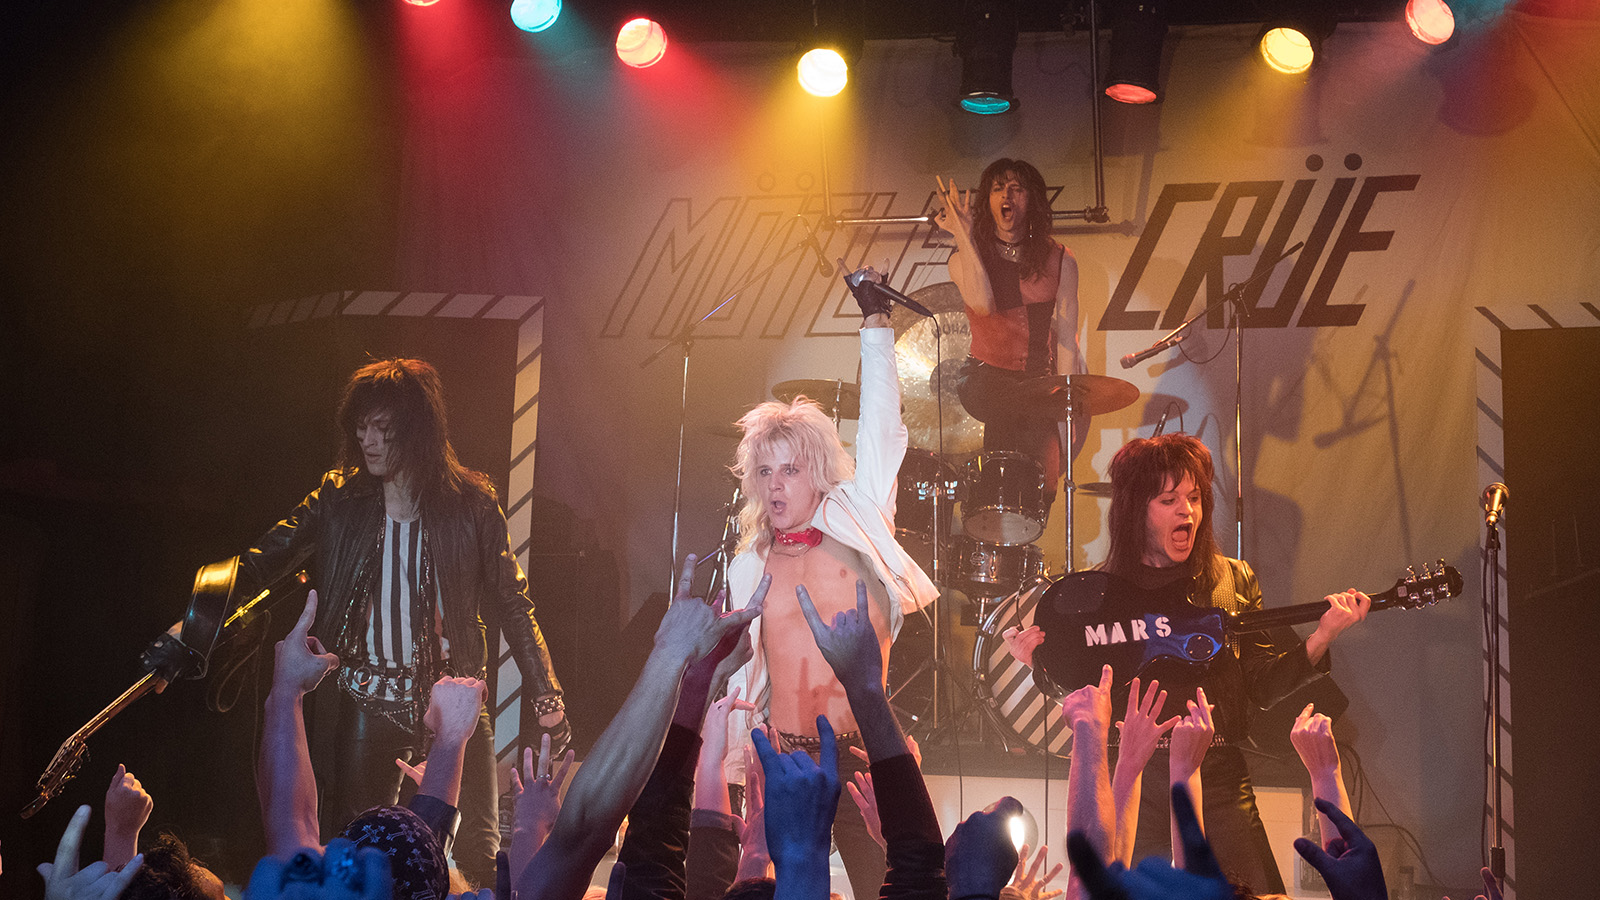 'The Dirt': 13 Most Insane Moments From Netflix's Mötley Crüe Movie